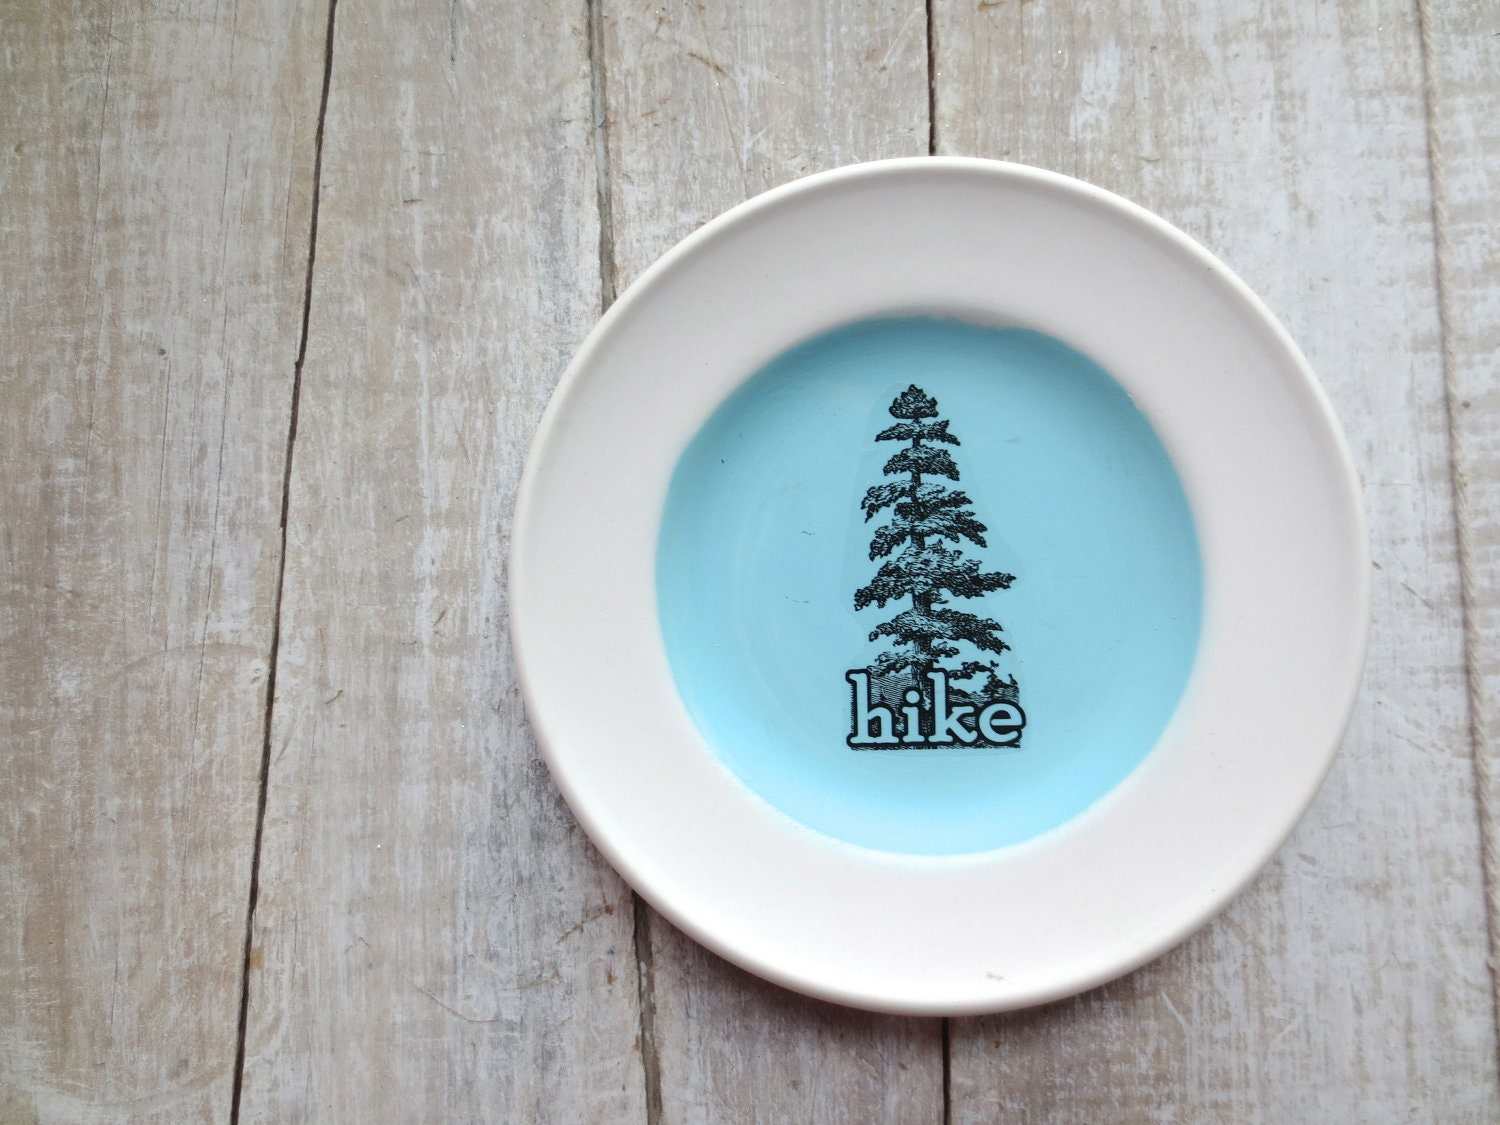 Hike SIgn // Pine Tree // Outdoor Decor // Blue Vintage Sign // Woodland Decor // Forest Tree // Lake Cabin Decor - SweetMeas